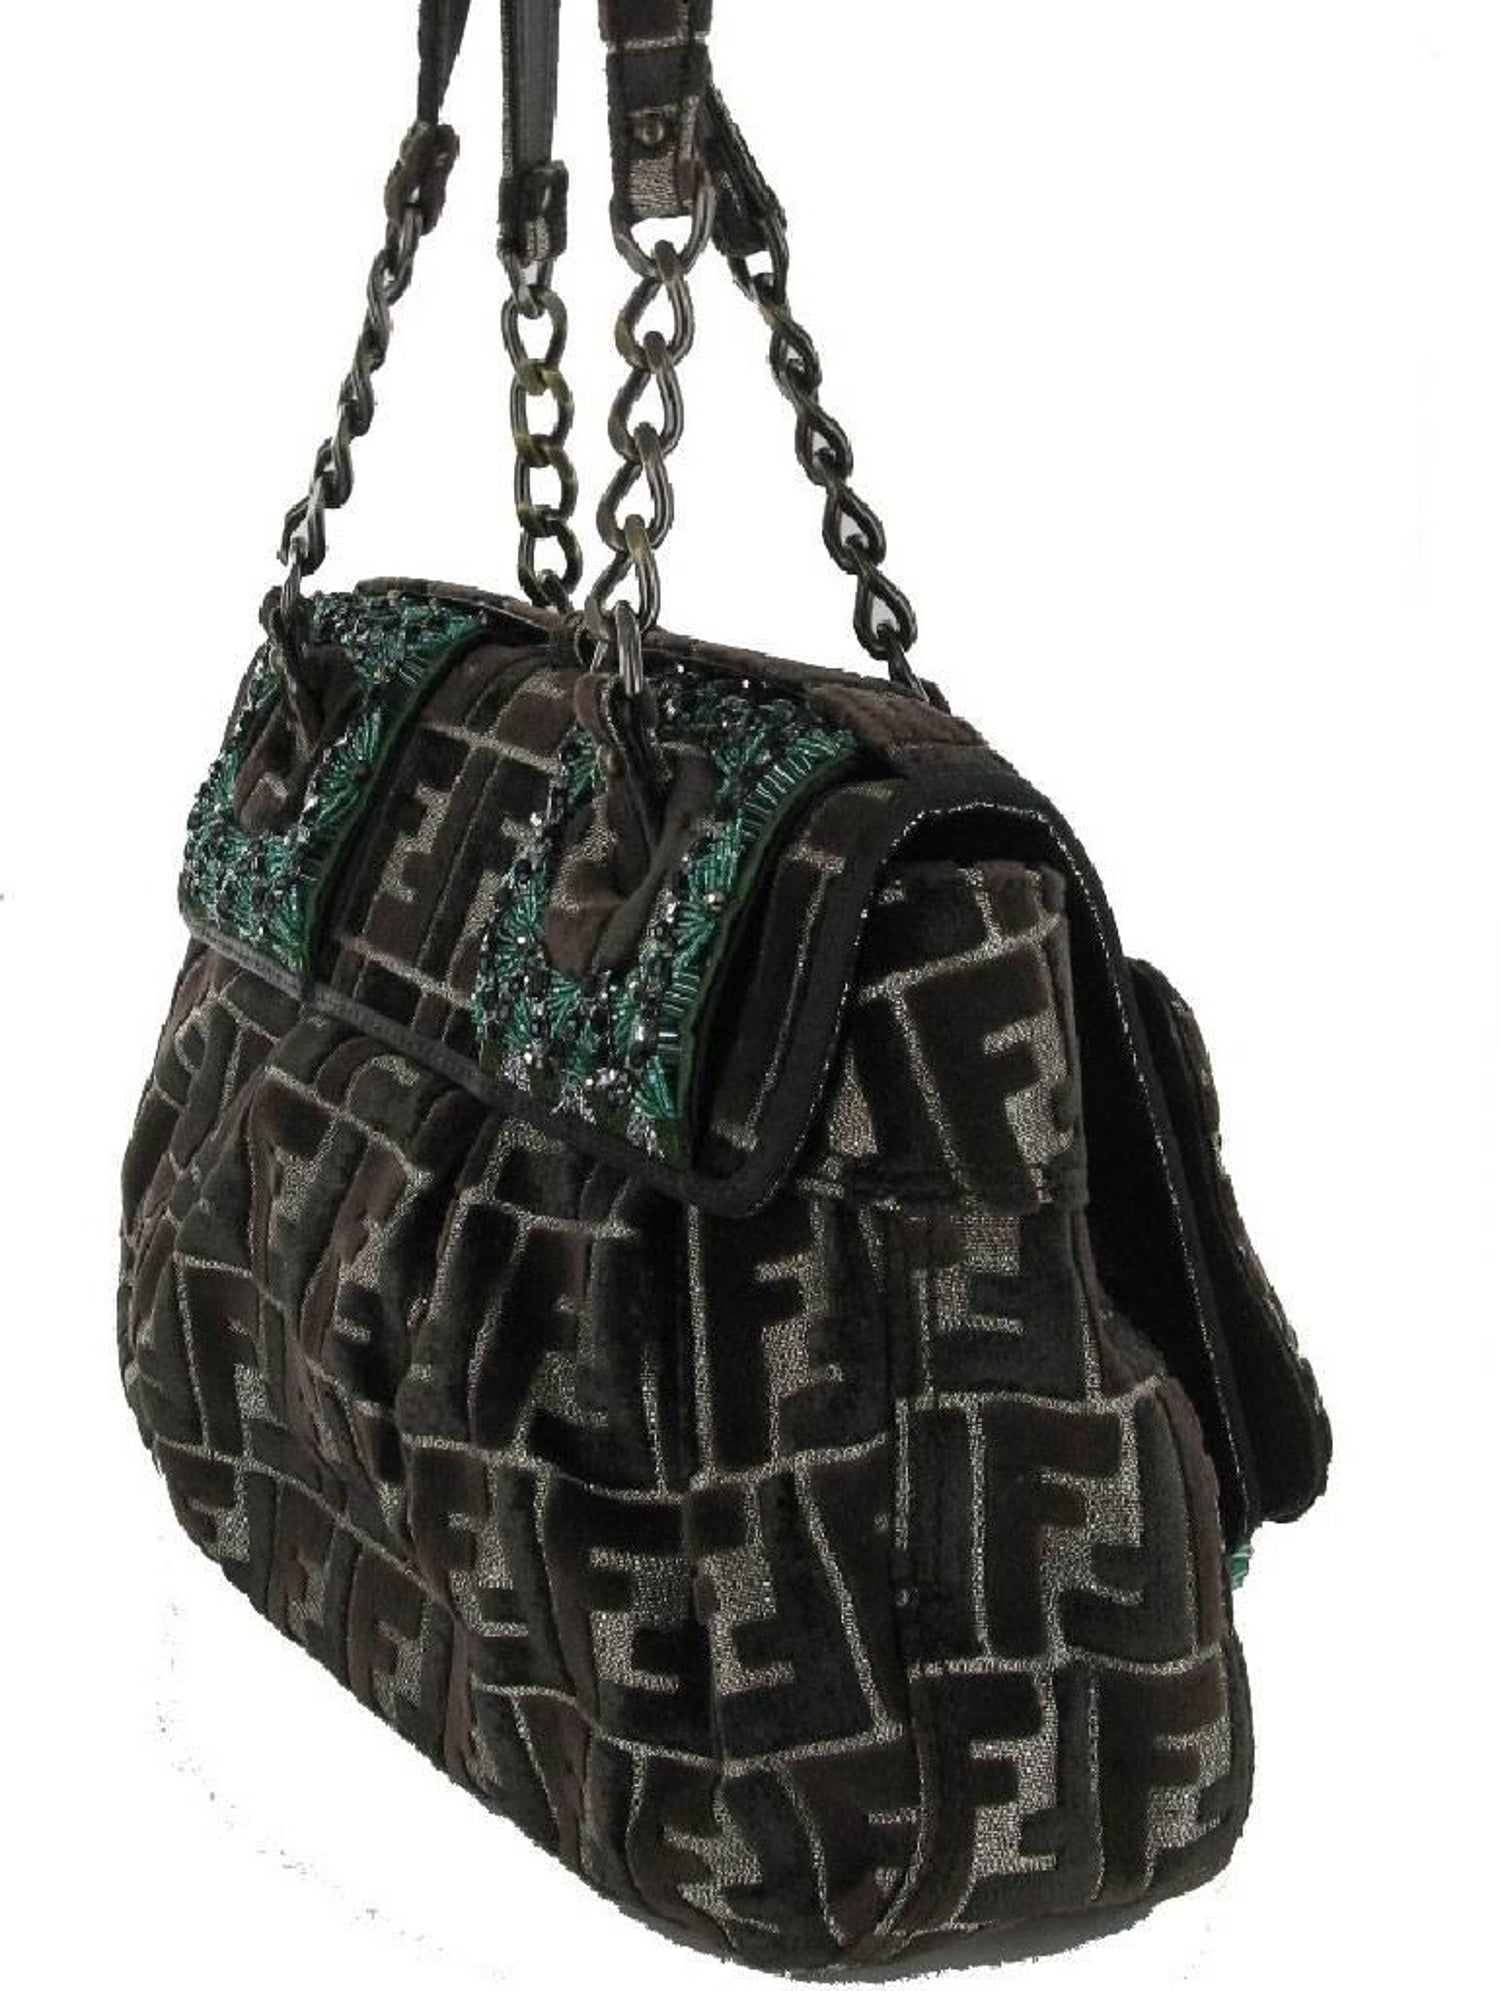 ab6167907f39 FENDI Limited Edition Flap Bag in Velvet Embroidered with Green and Black  Pearls For Sale at 1stdibs